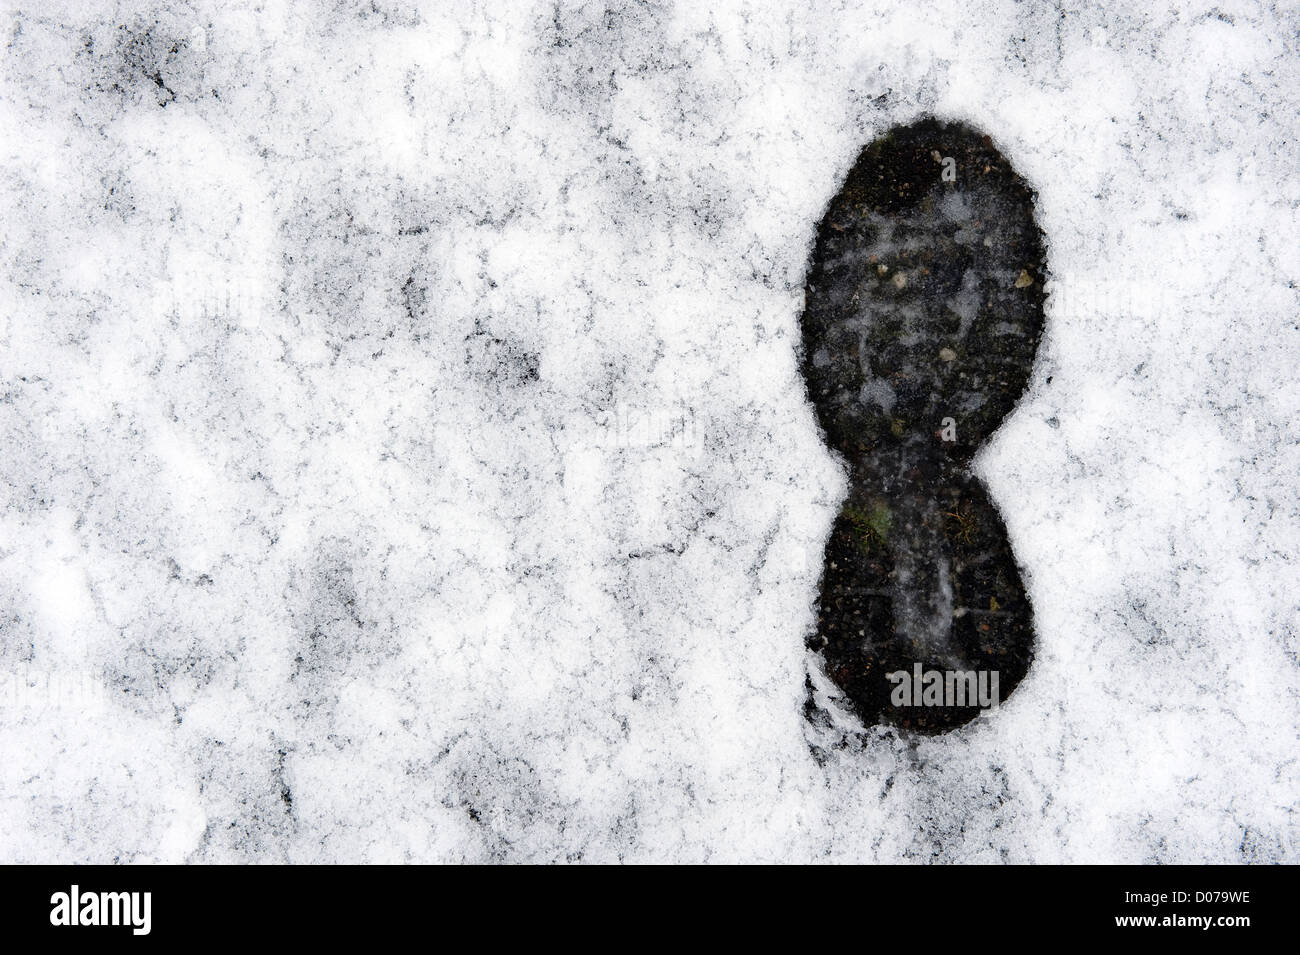 A single footprint in the melting snow - Stock Image